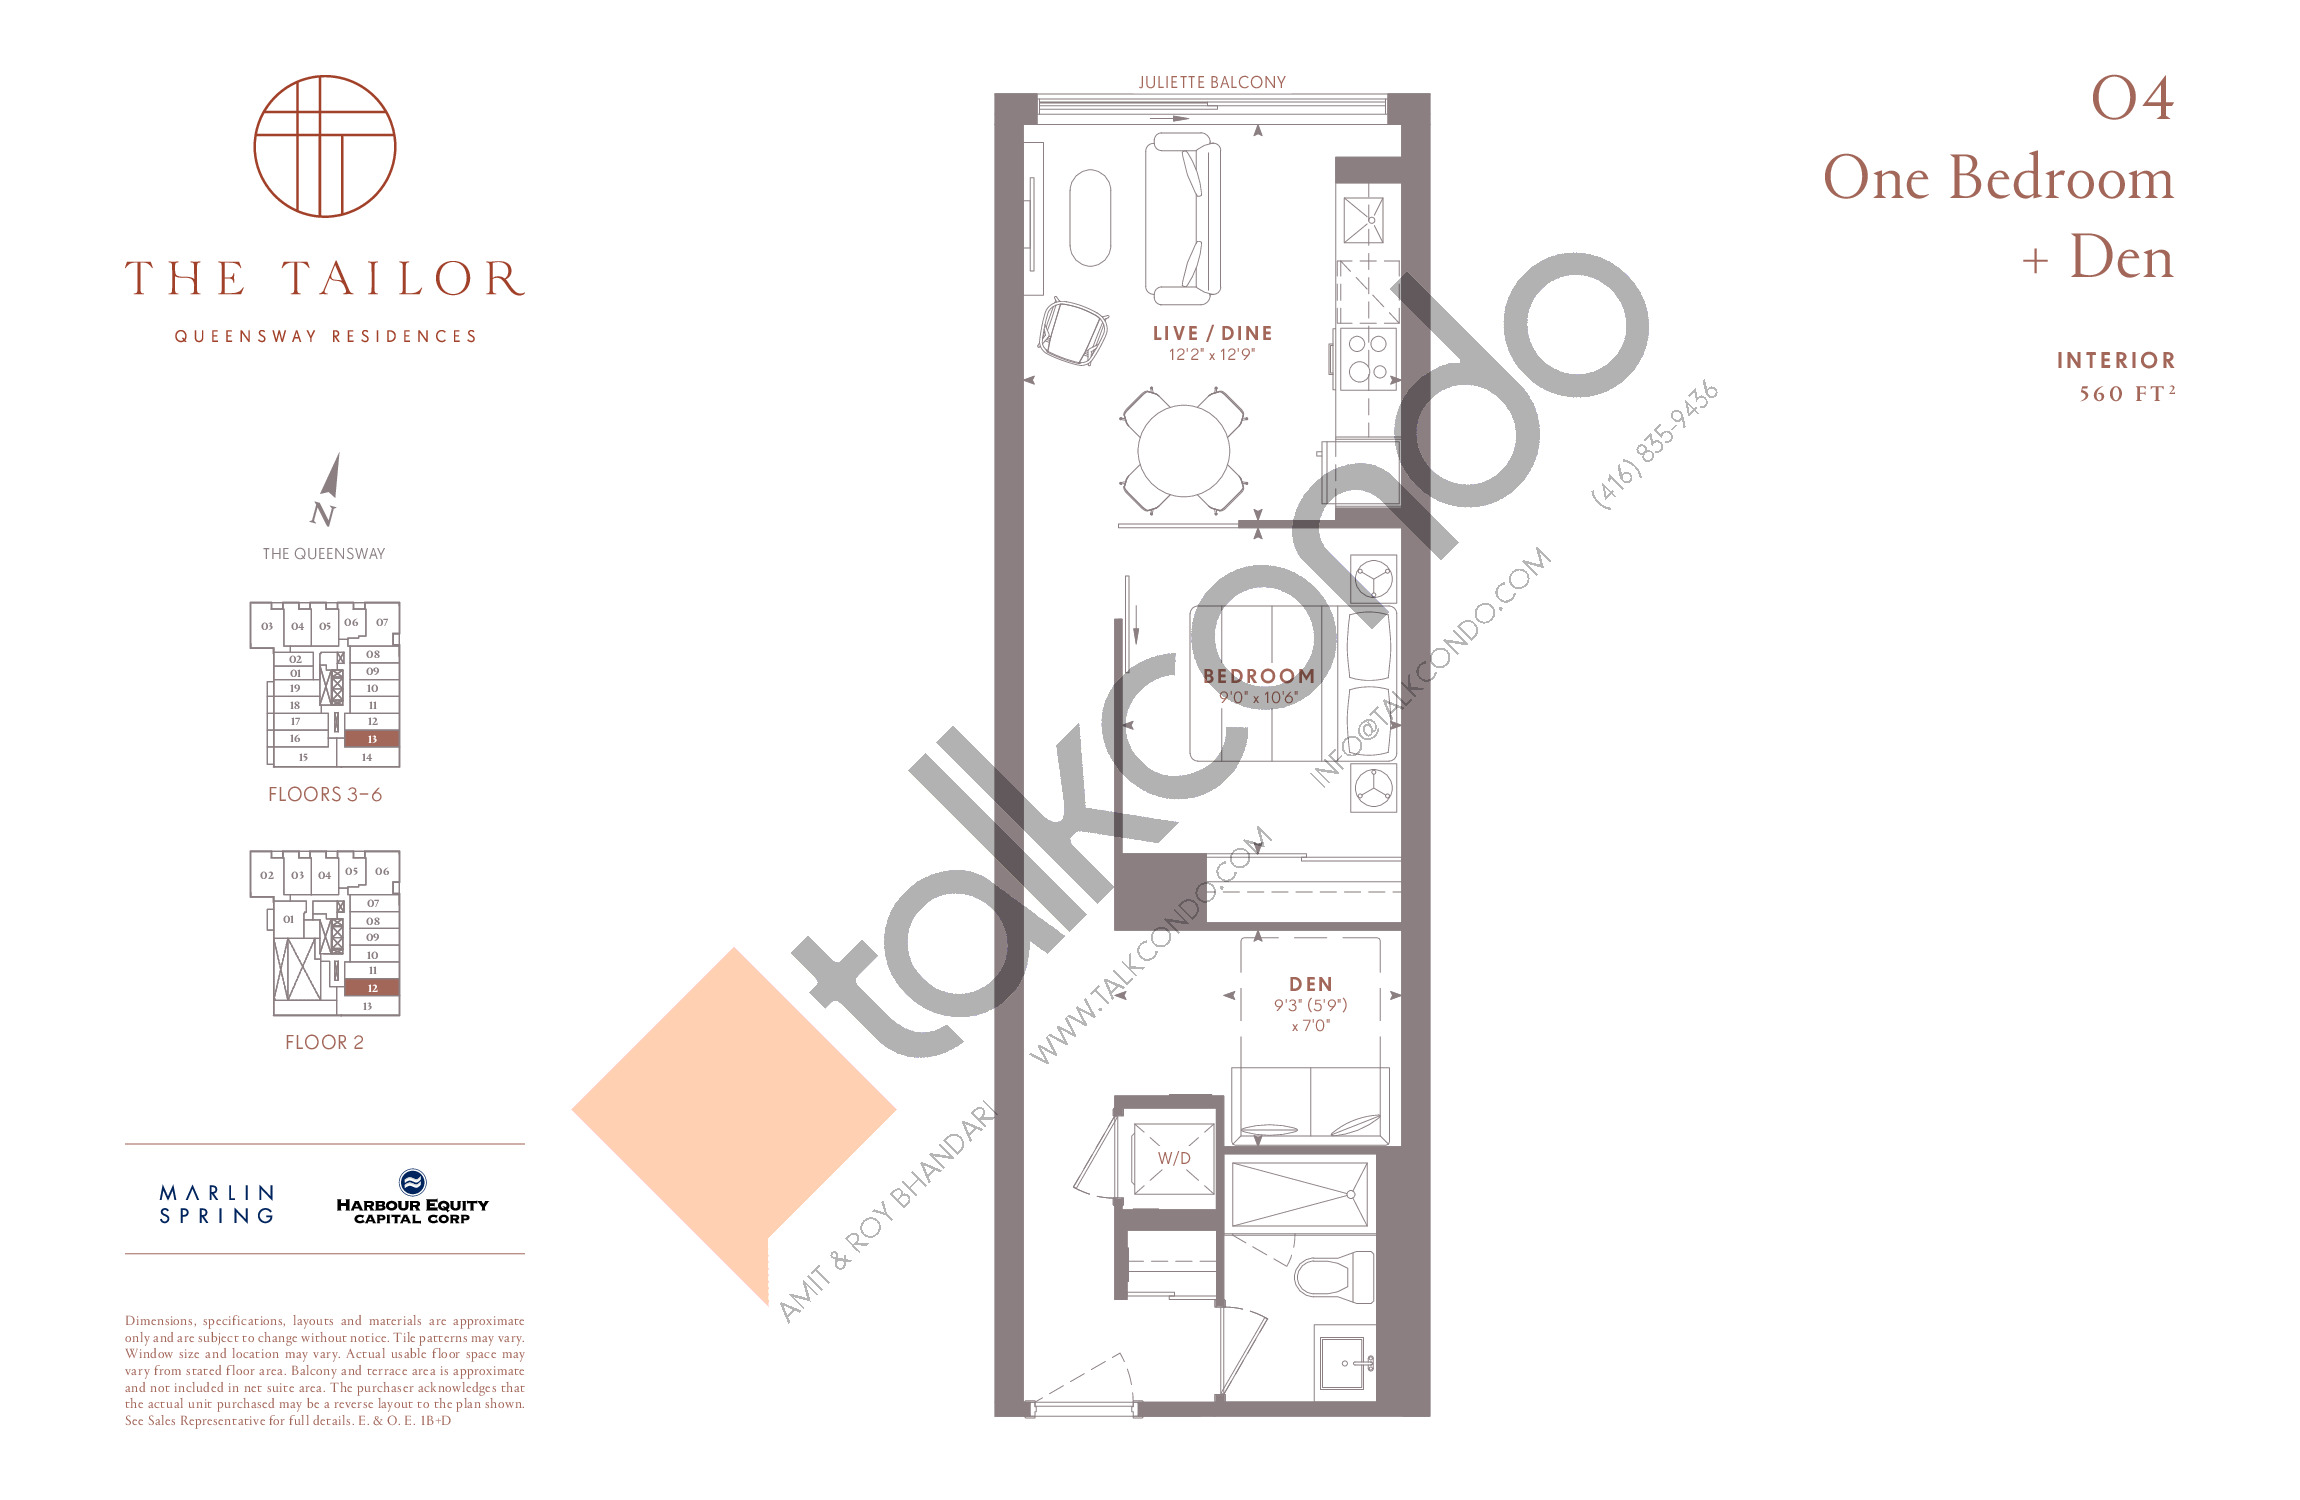 O4 Floor Plan at The Tailor Queensway Residences - 560 sq.ft